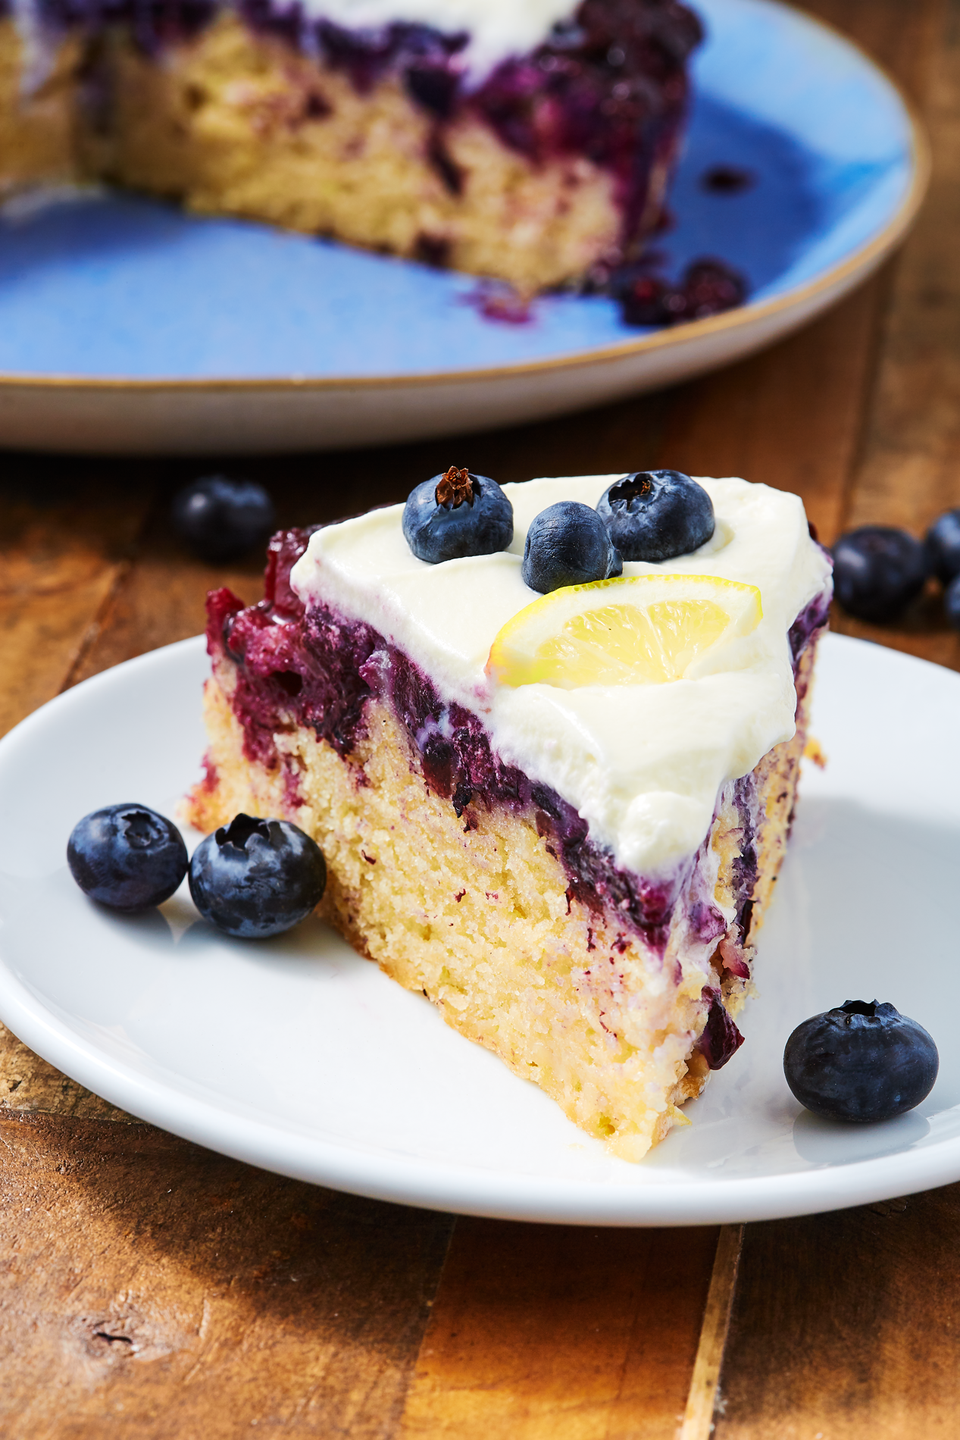 """<p>Move over, pineapple. </p><p>Get the recipe from <a href=""""https://www.delish.com/cooking/a26963418/blueberry-lemon-upside-down-cake-recipe/"""" rel=""""nofollow noopener"""" target=""""_blank"""" data-ylk=""""slk:Delish"""" class=""""link rapid-noclick-resp"""">Delish</a>.</p>"""